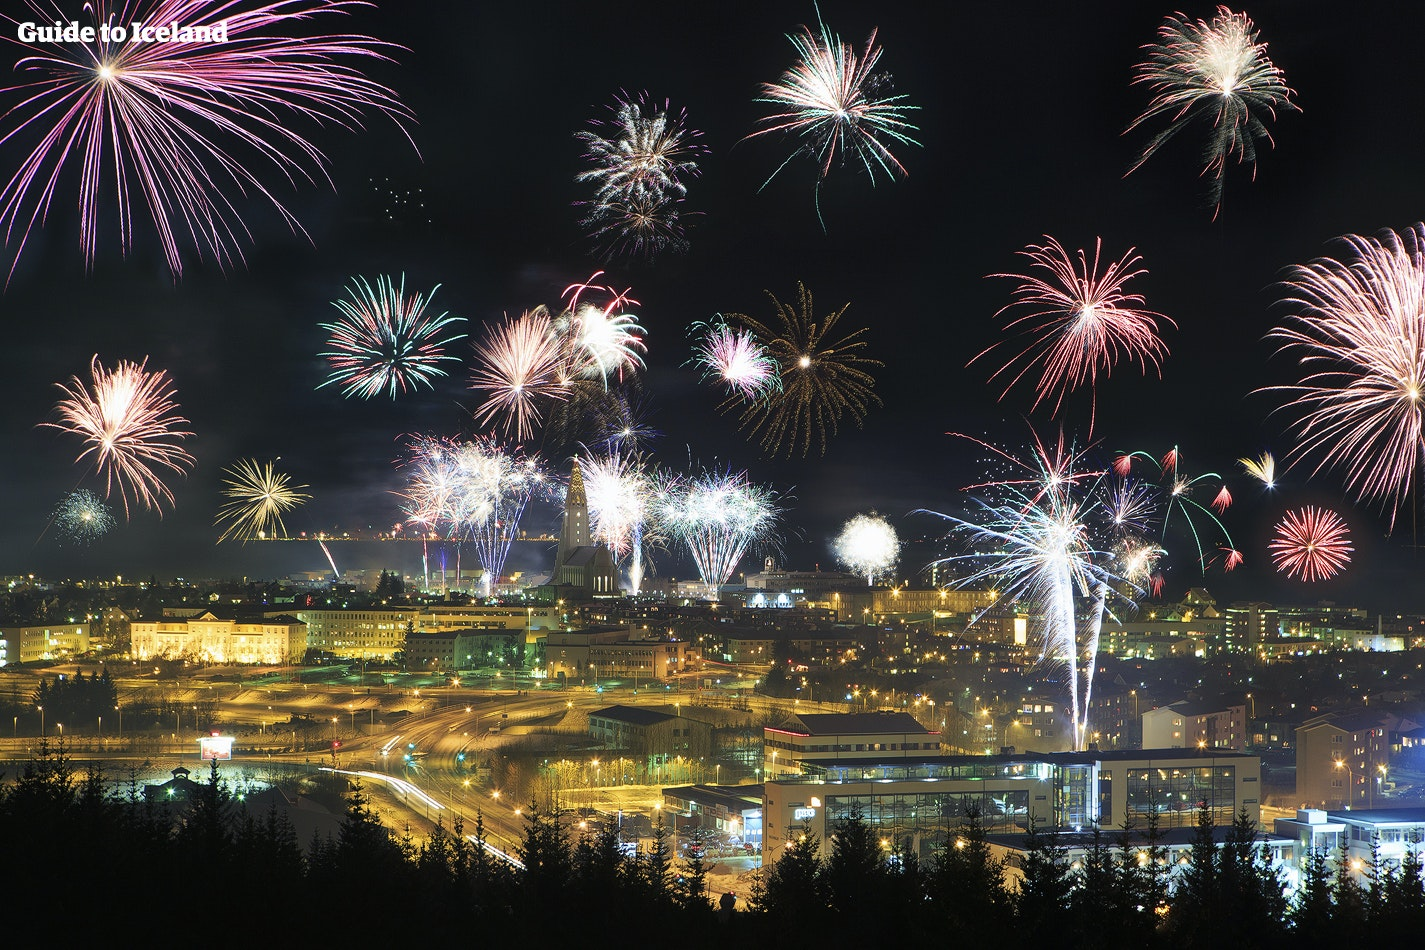 Reykjavík city during New Year's Eve